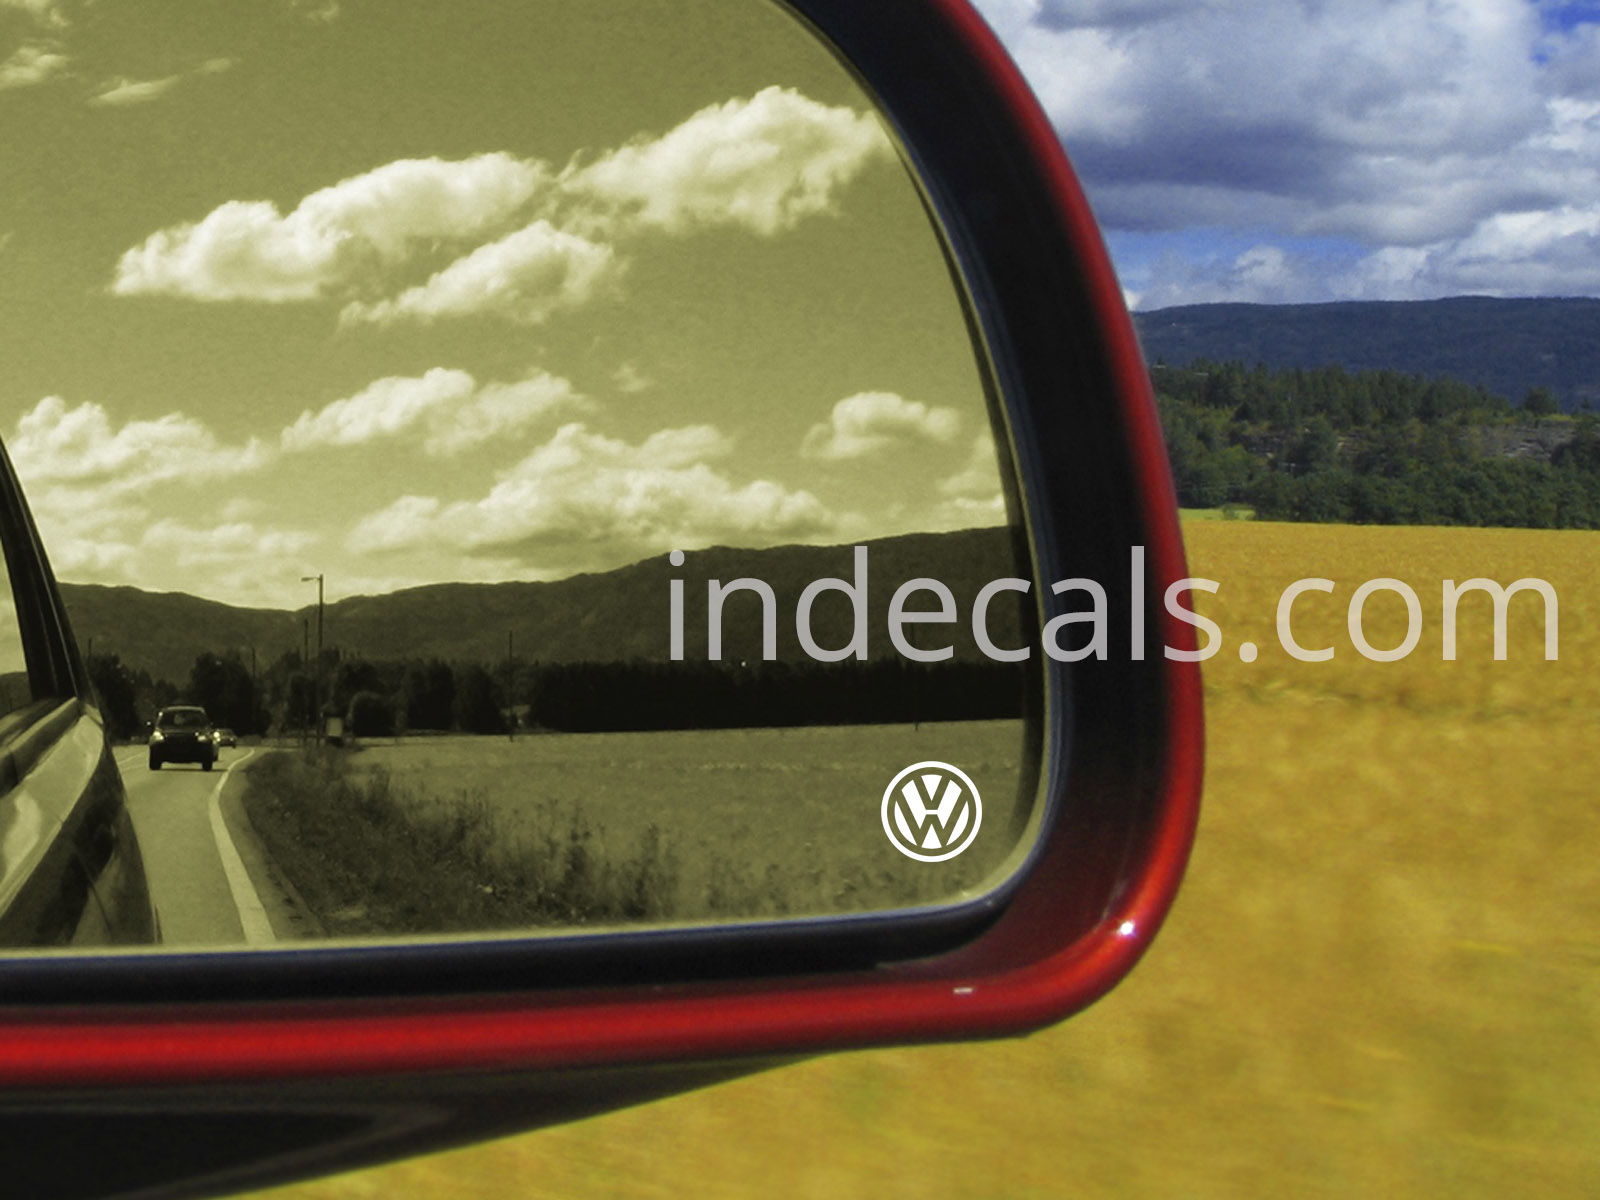 3 x Volkswagen Stickers for Mirror Glass - White